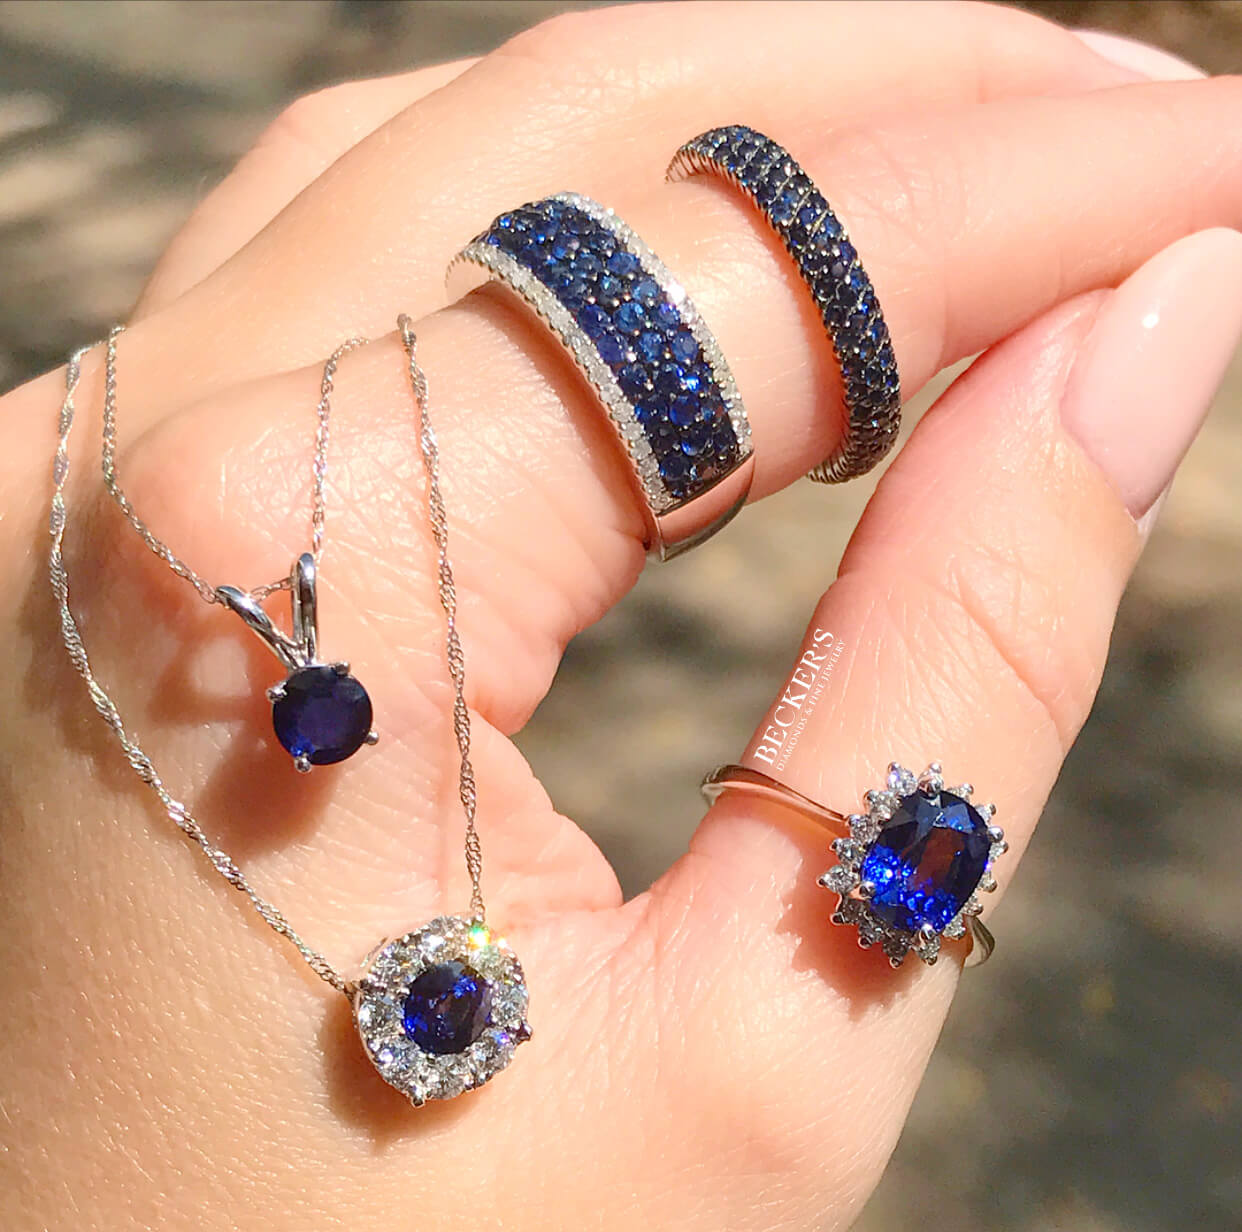 Sapphire Rings and Pendants